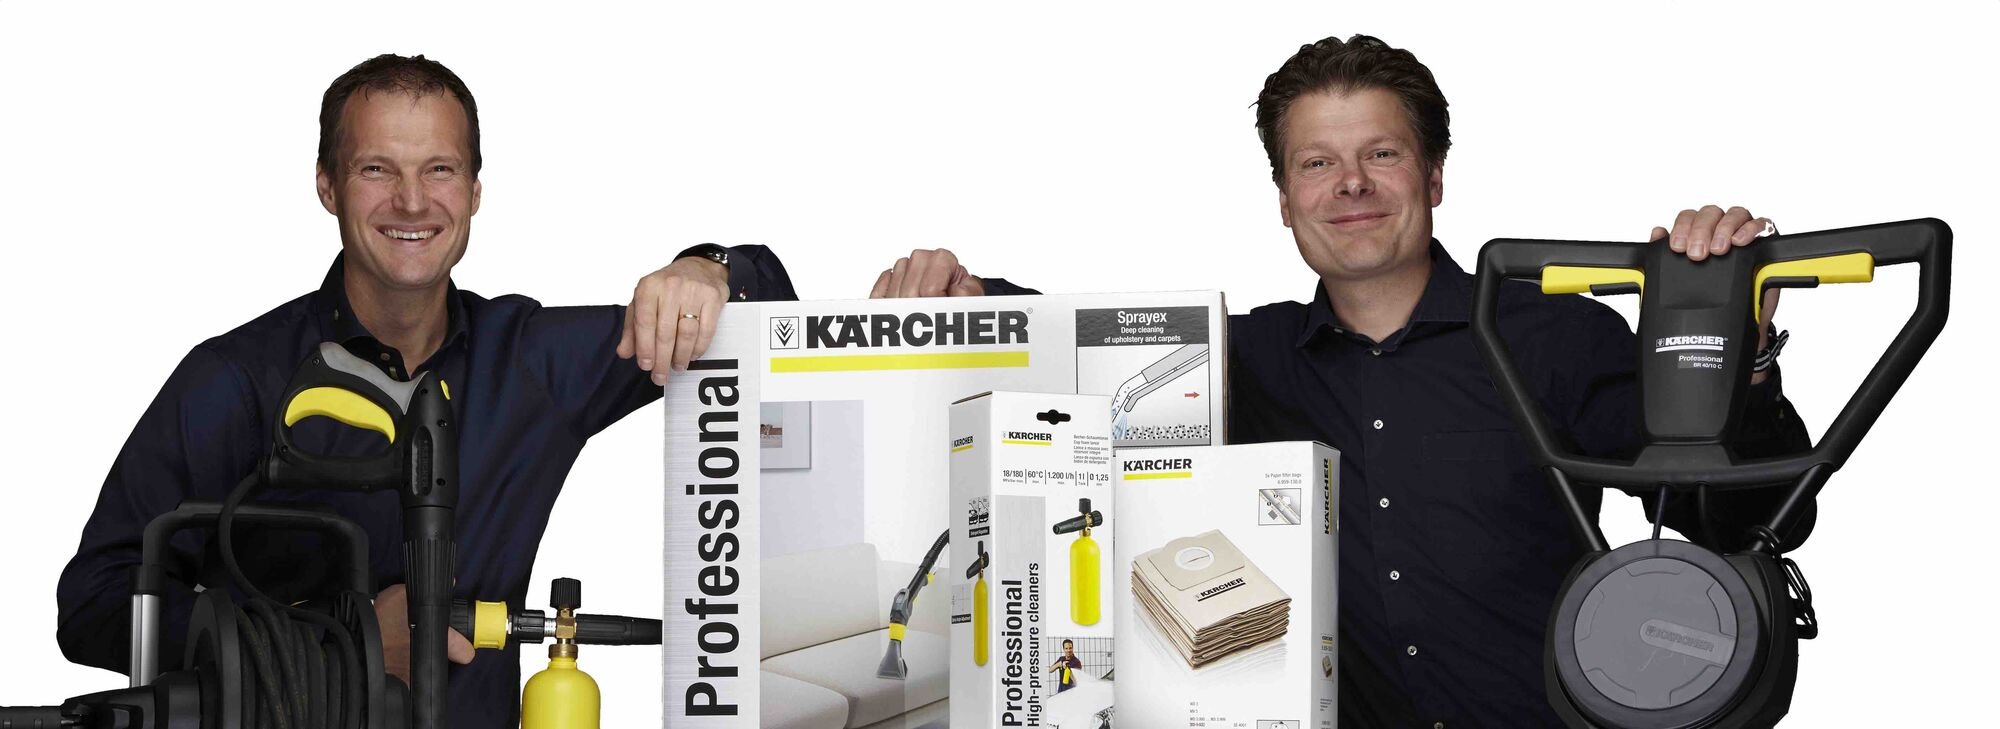 Karcher 2profs team